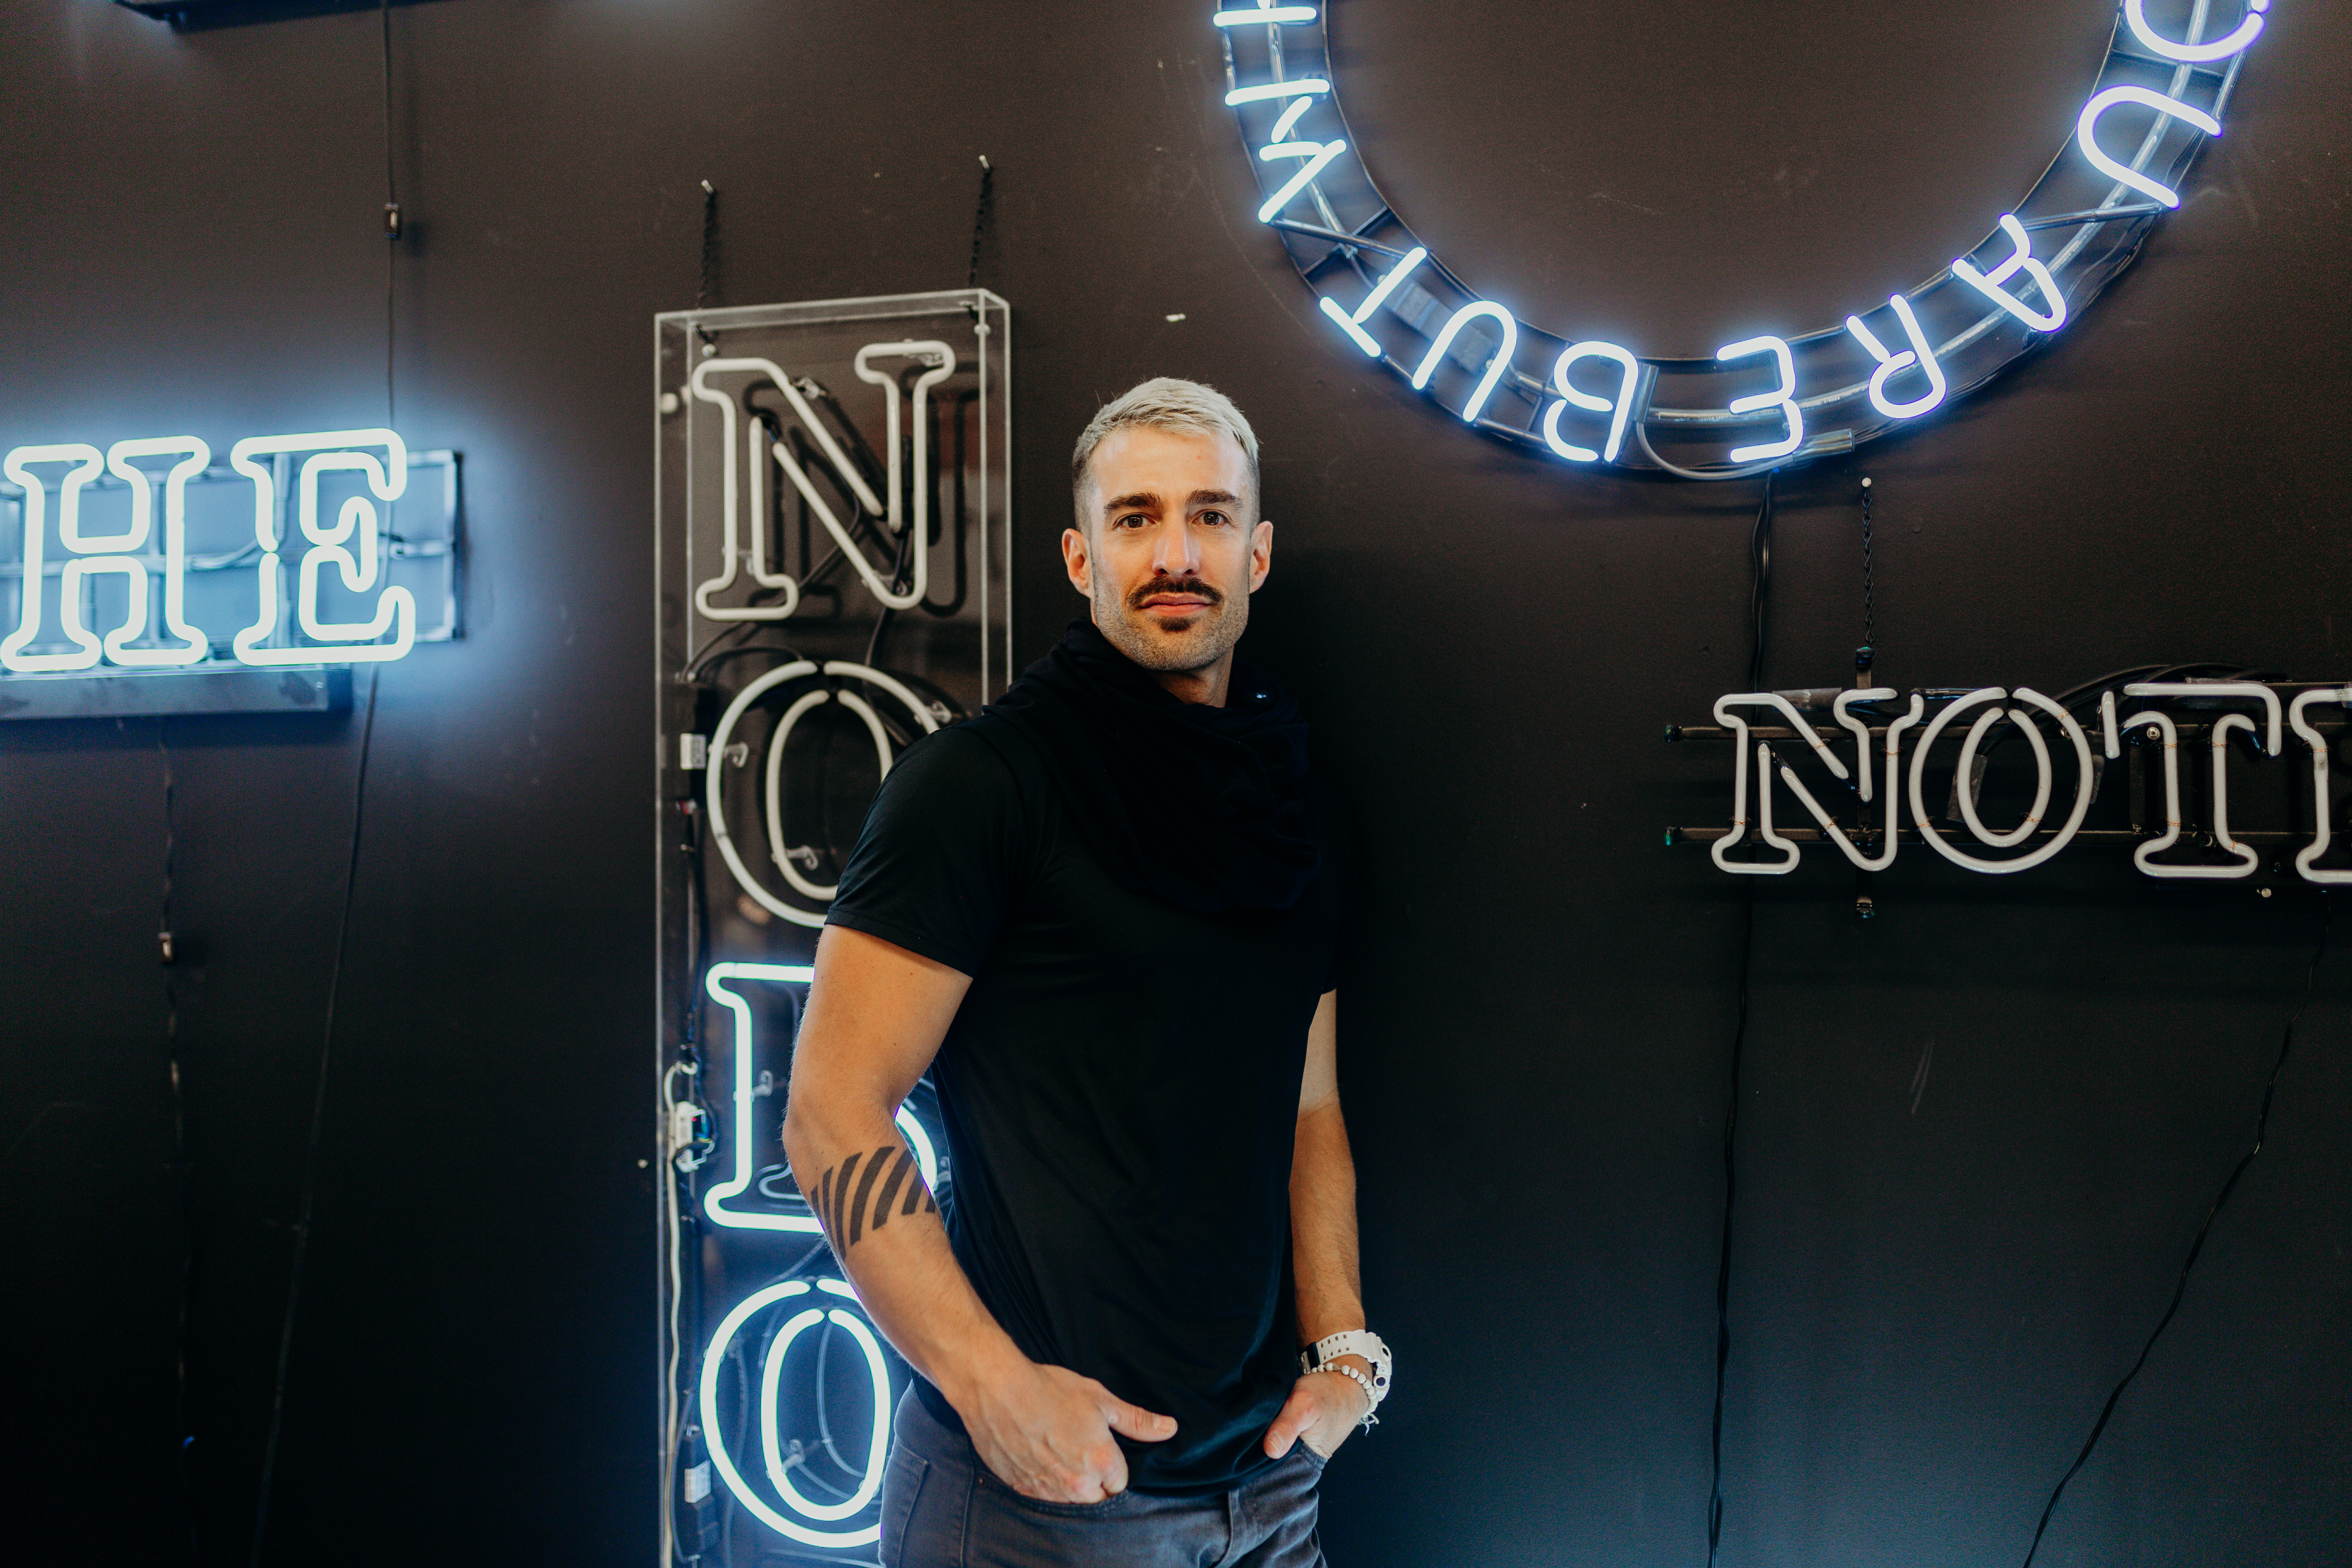 Portrait of Joel Swanson posing in front of neon signs.